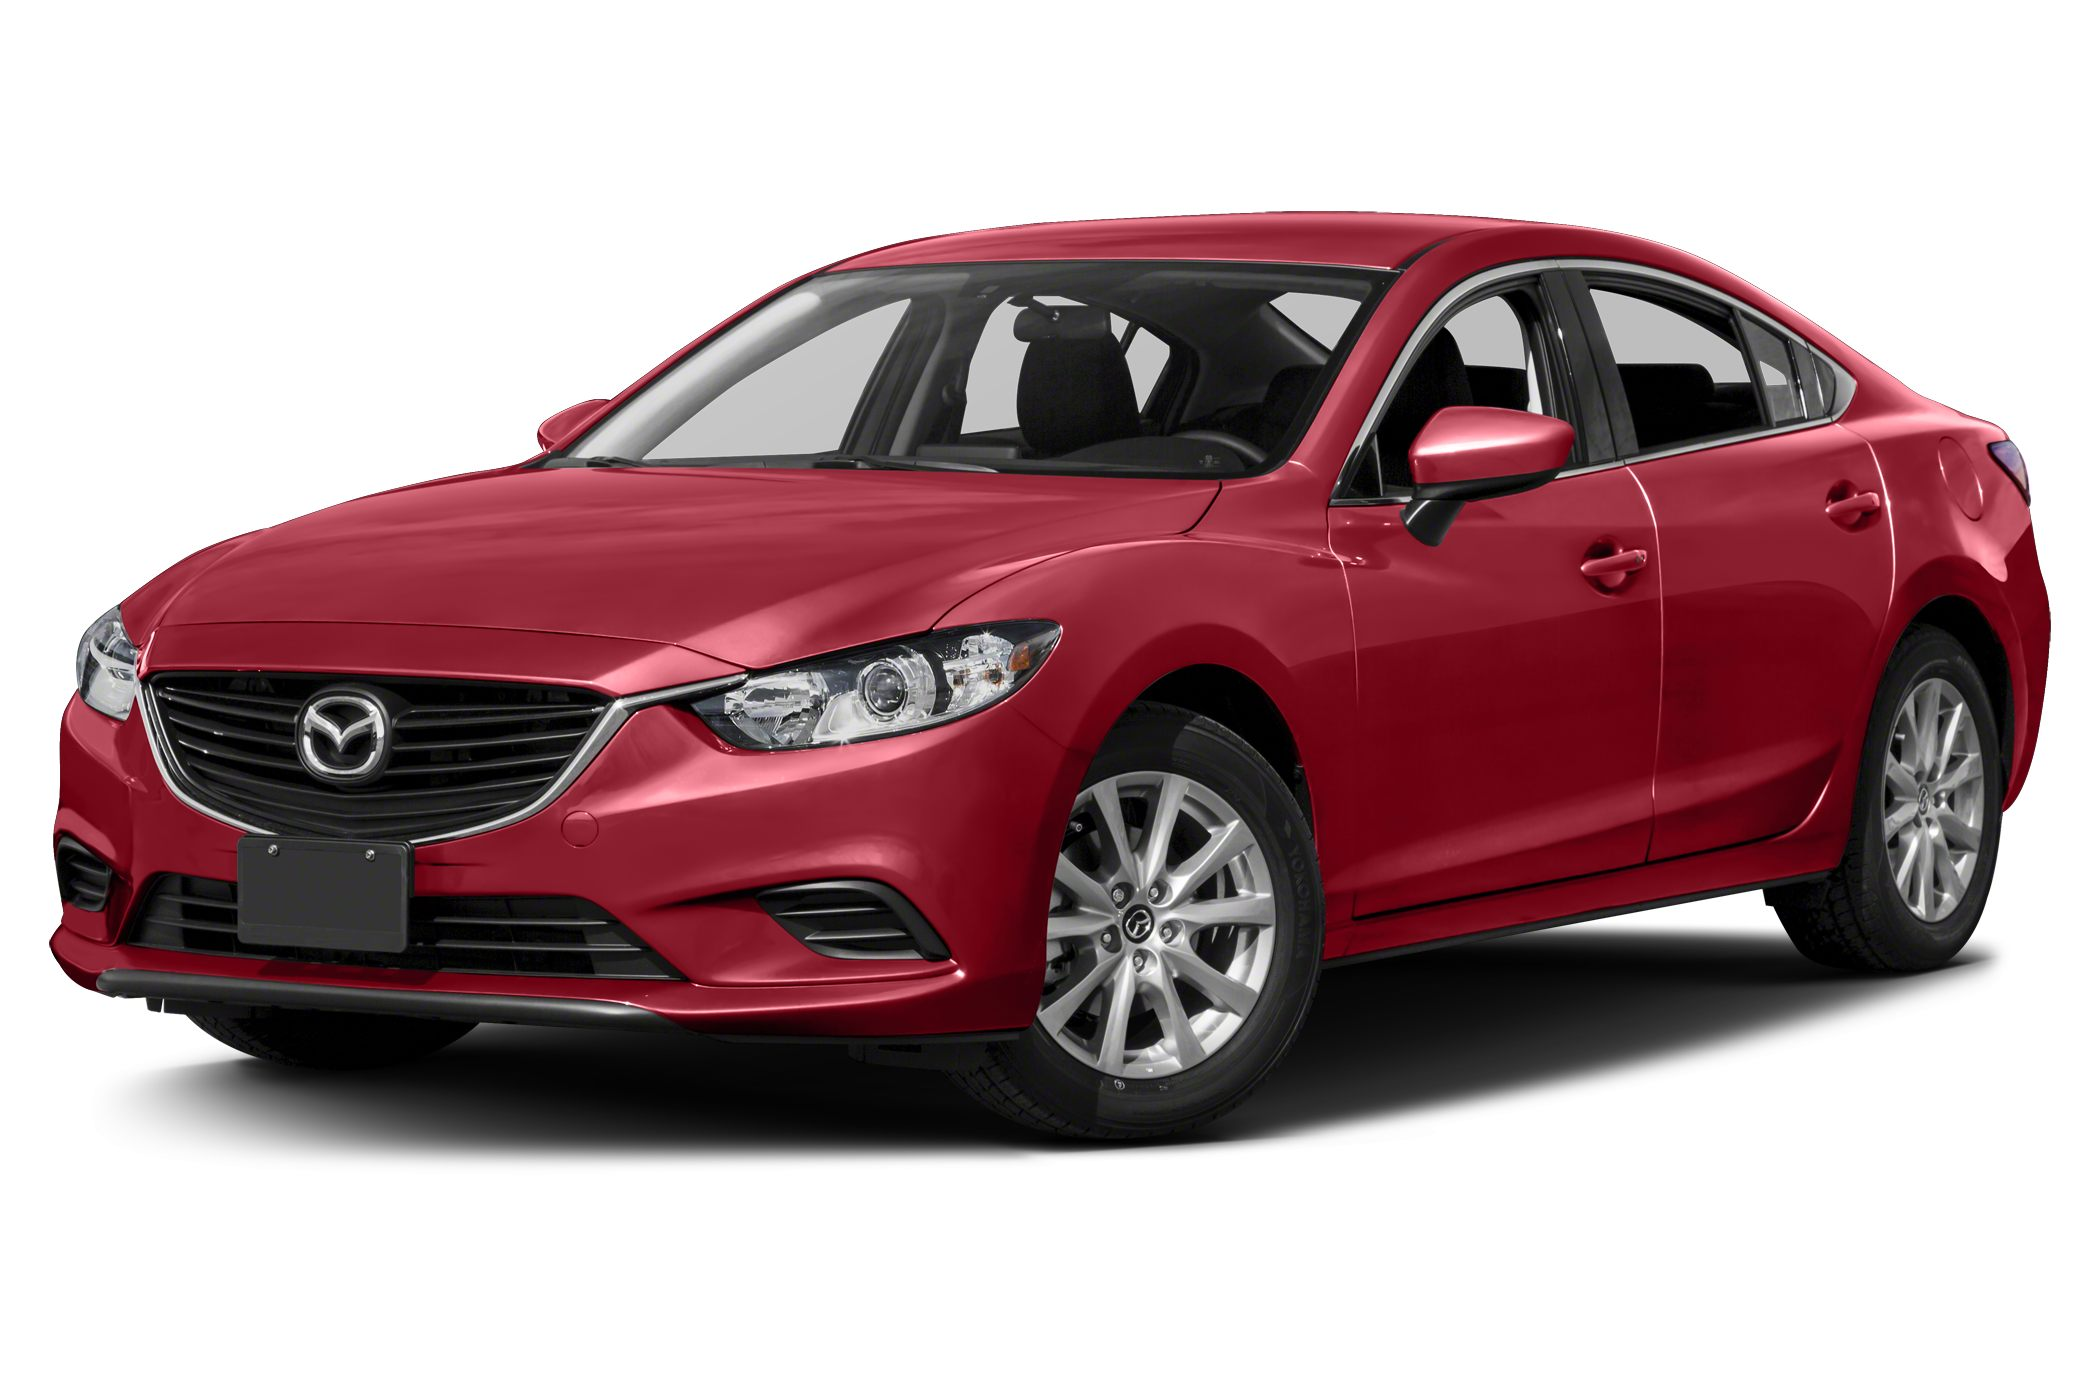 2014 Mazda 6 Body Structure – Boron Extrication